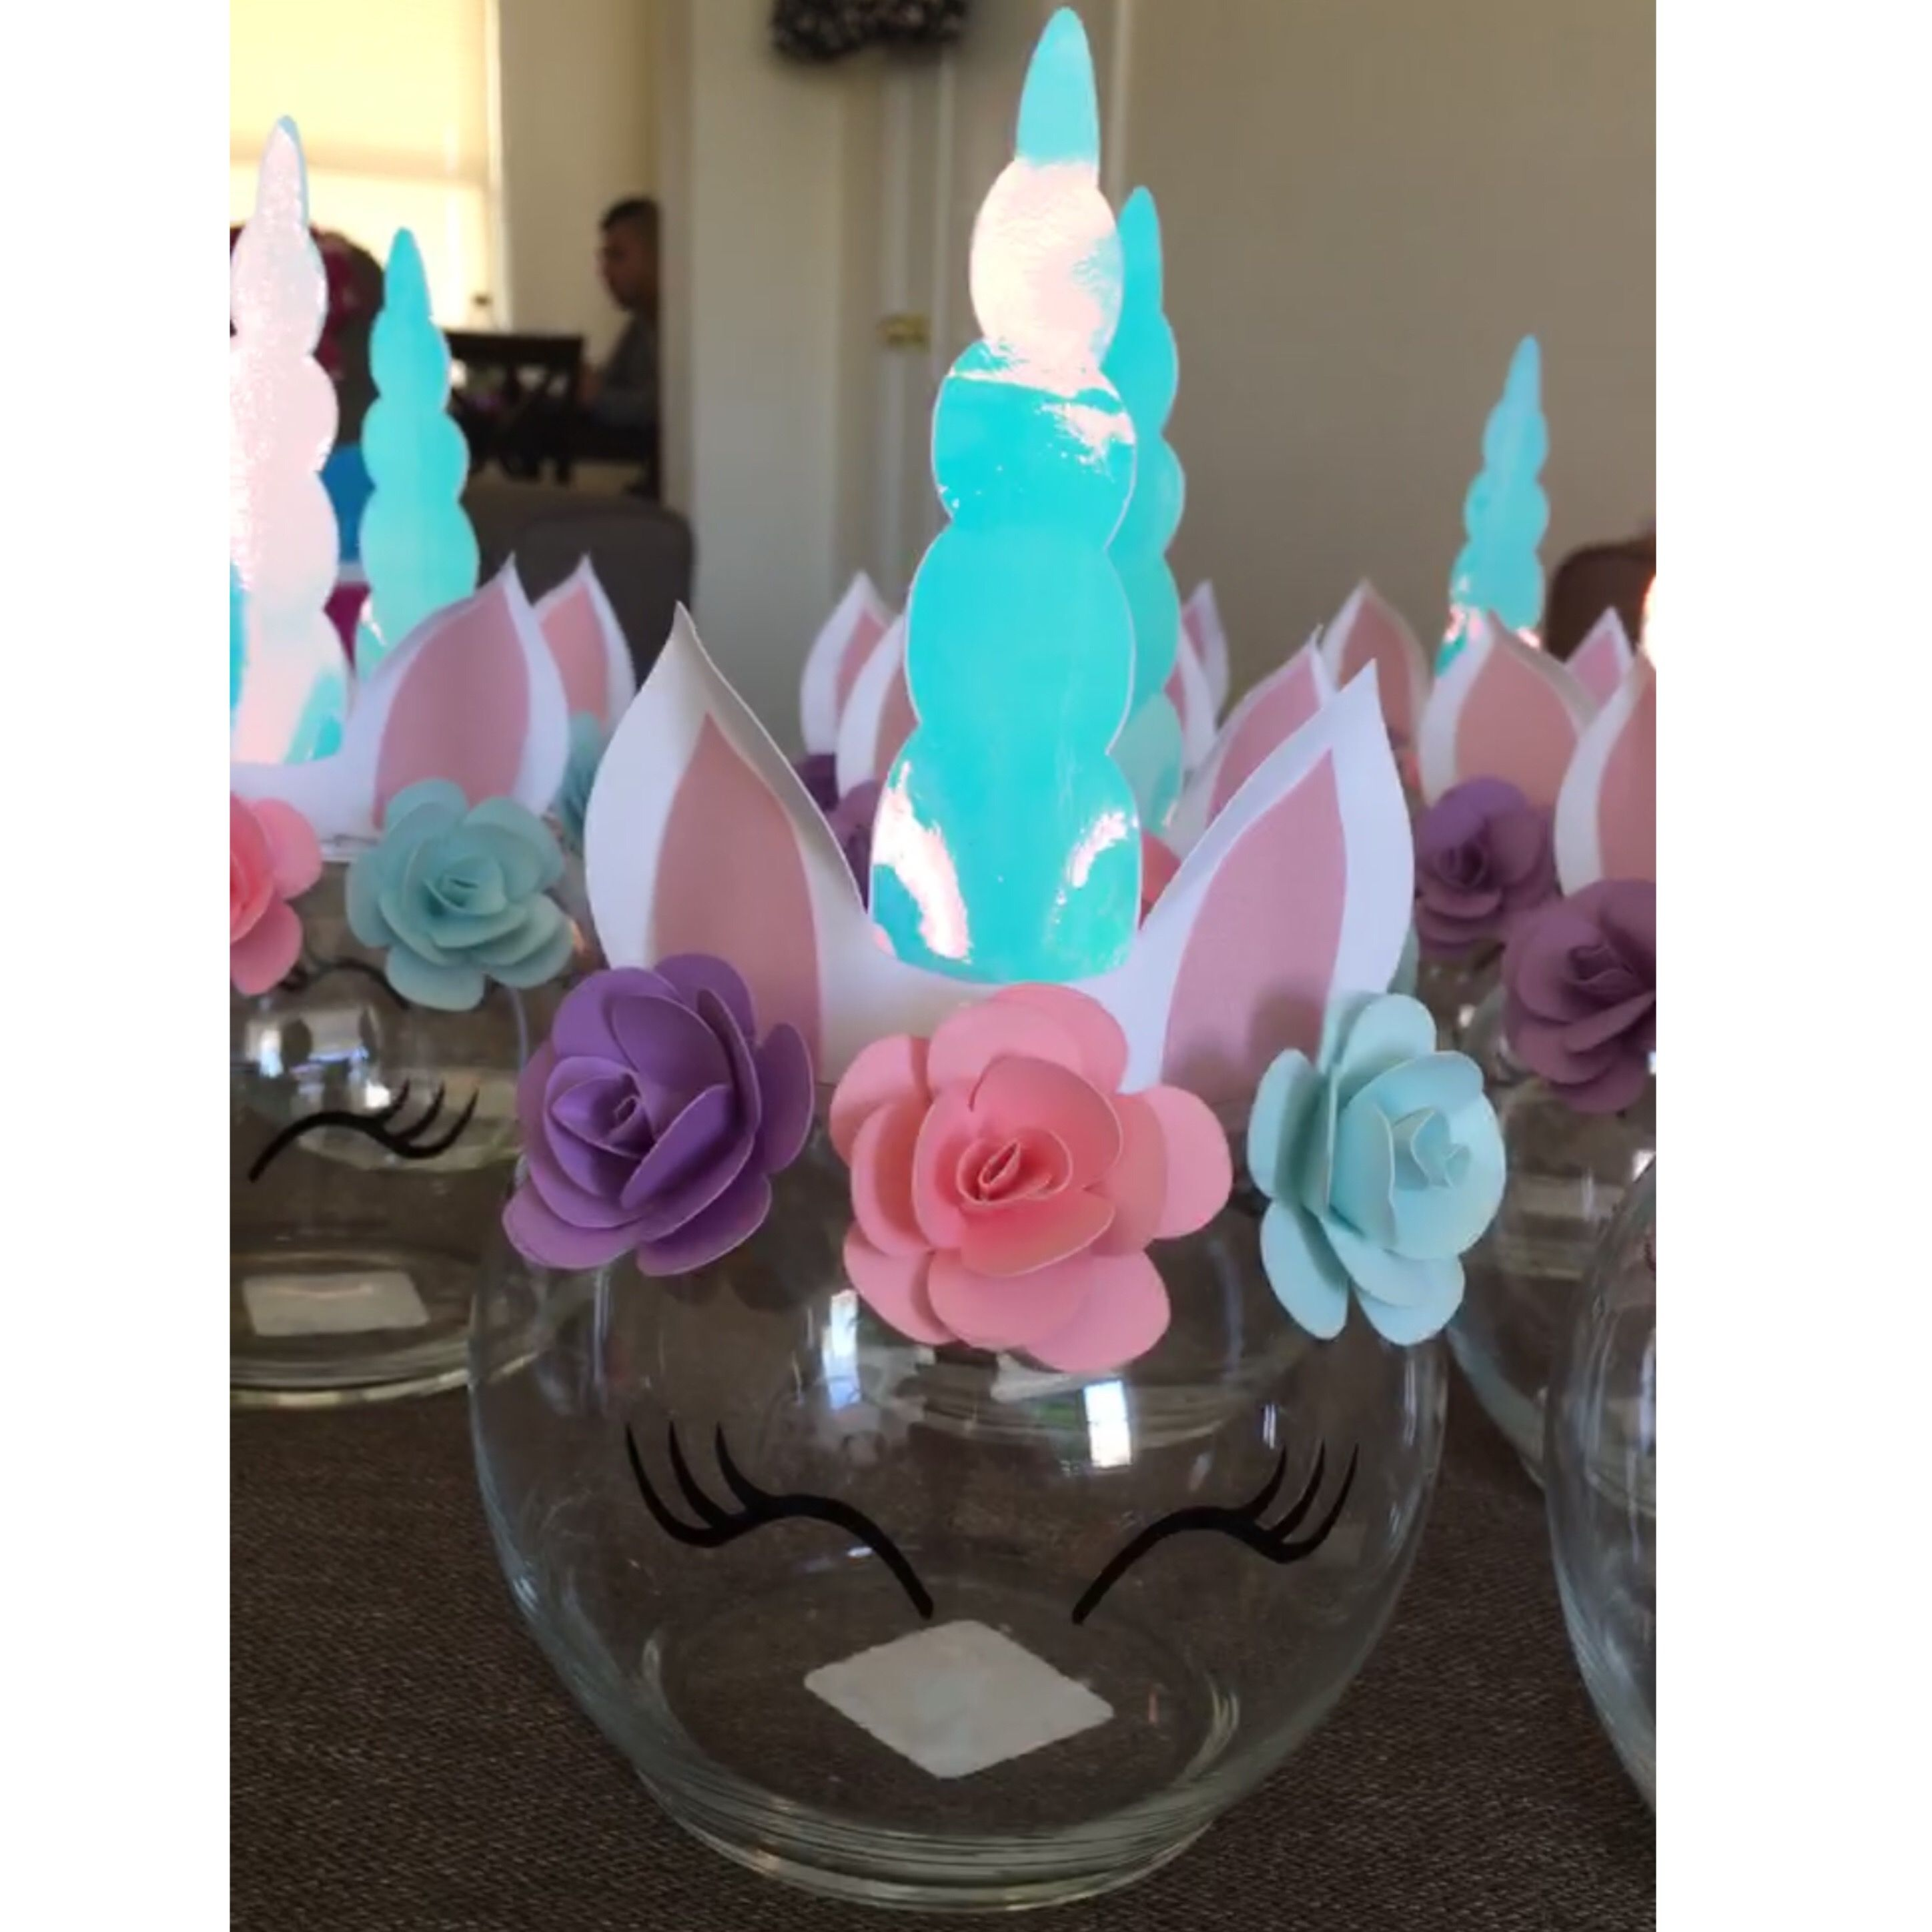 Made These Super Cute Unicorn Centerpiece For My Daughters 3rd Birthd Unicorn Birthday Party Decorations Unicorn Birthday Parties Unicorn Themed Birthday Party